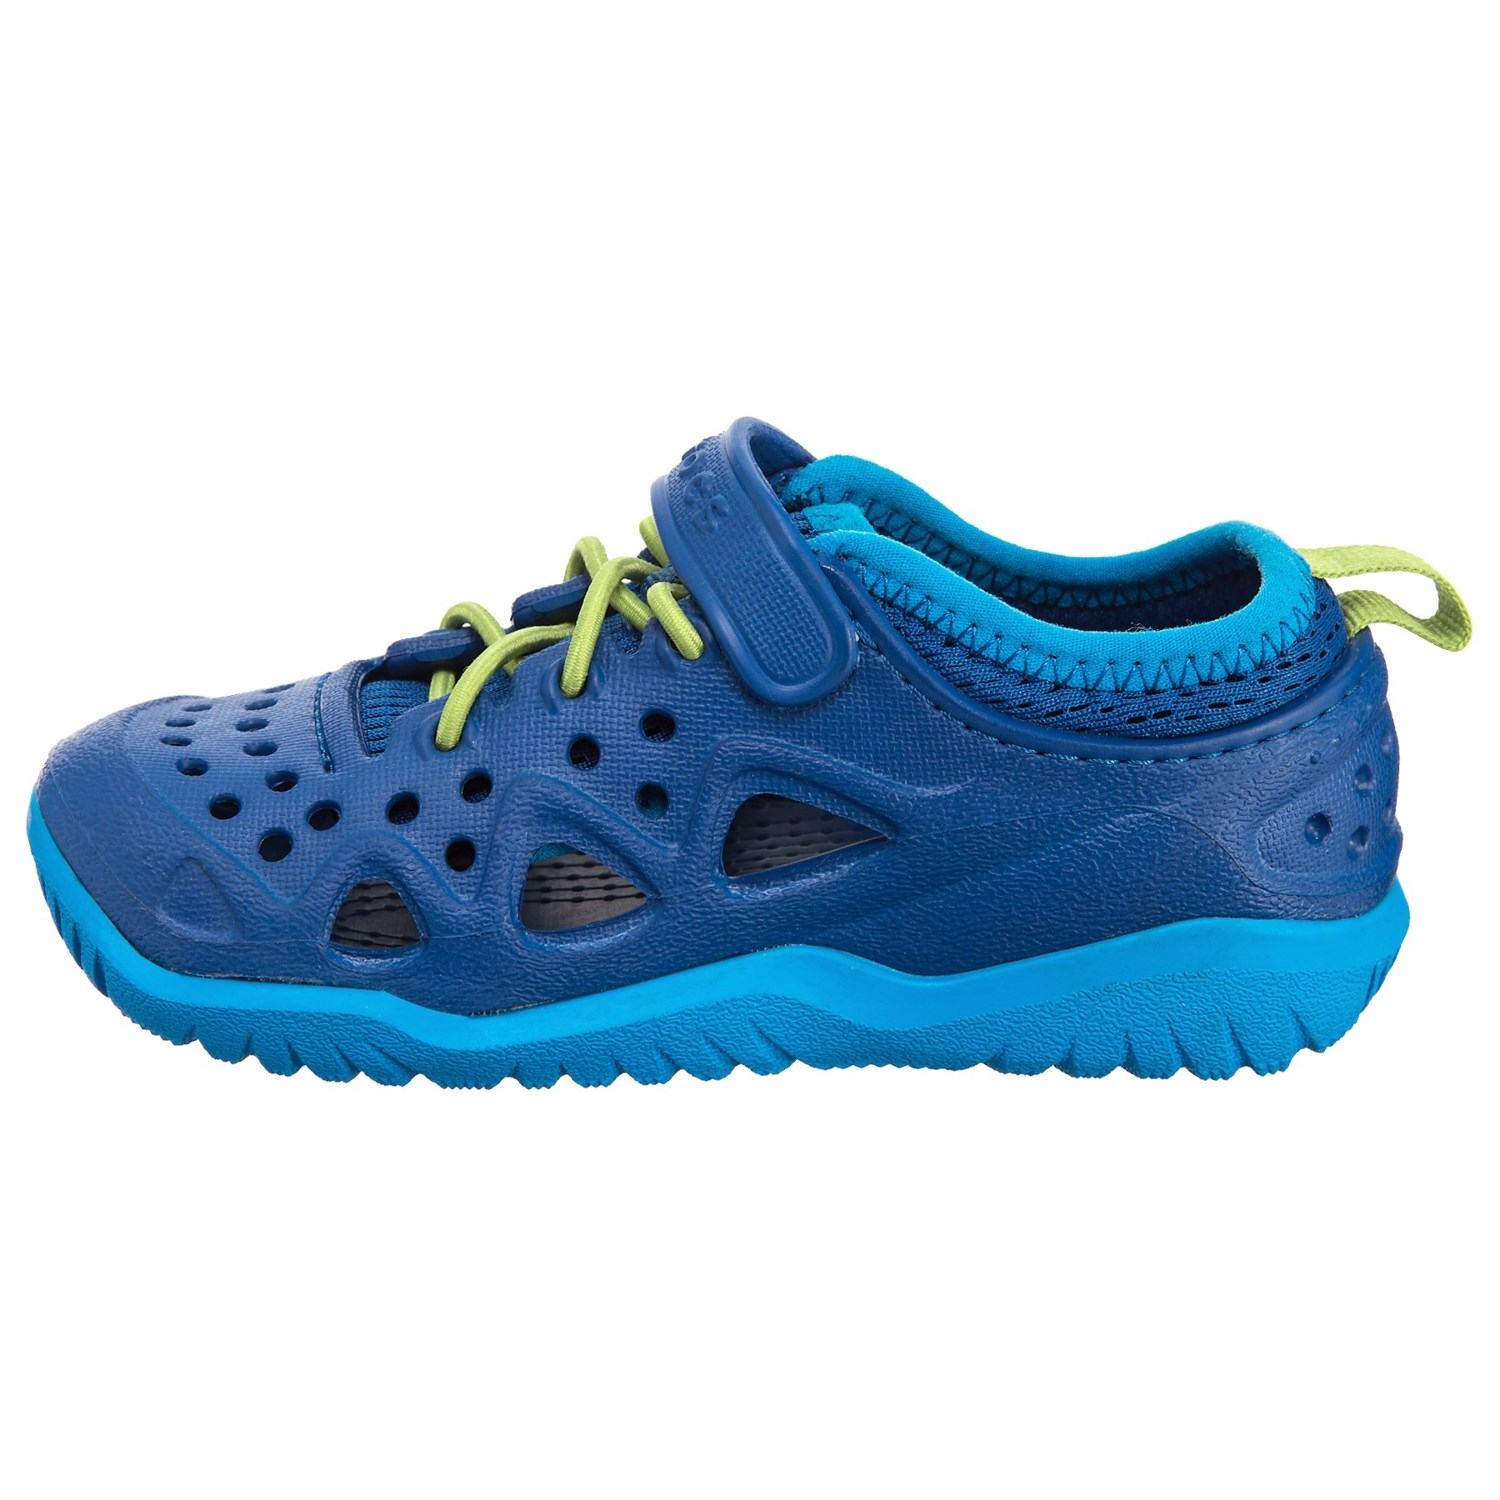 cdedcdc3237161 Crocs Swiftwater Play Shoes (For Boys) - Save 51%